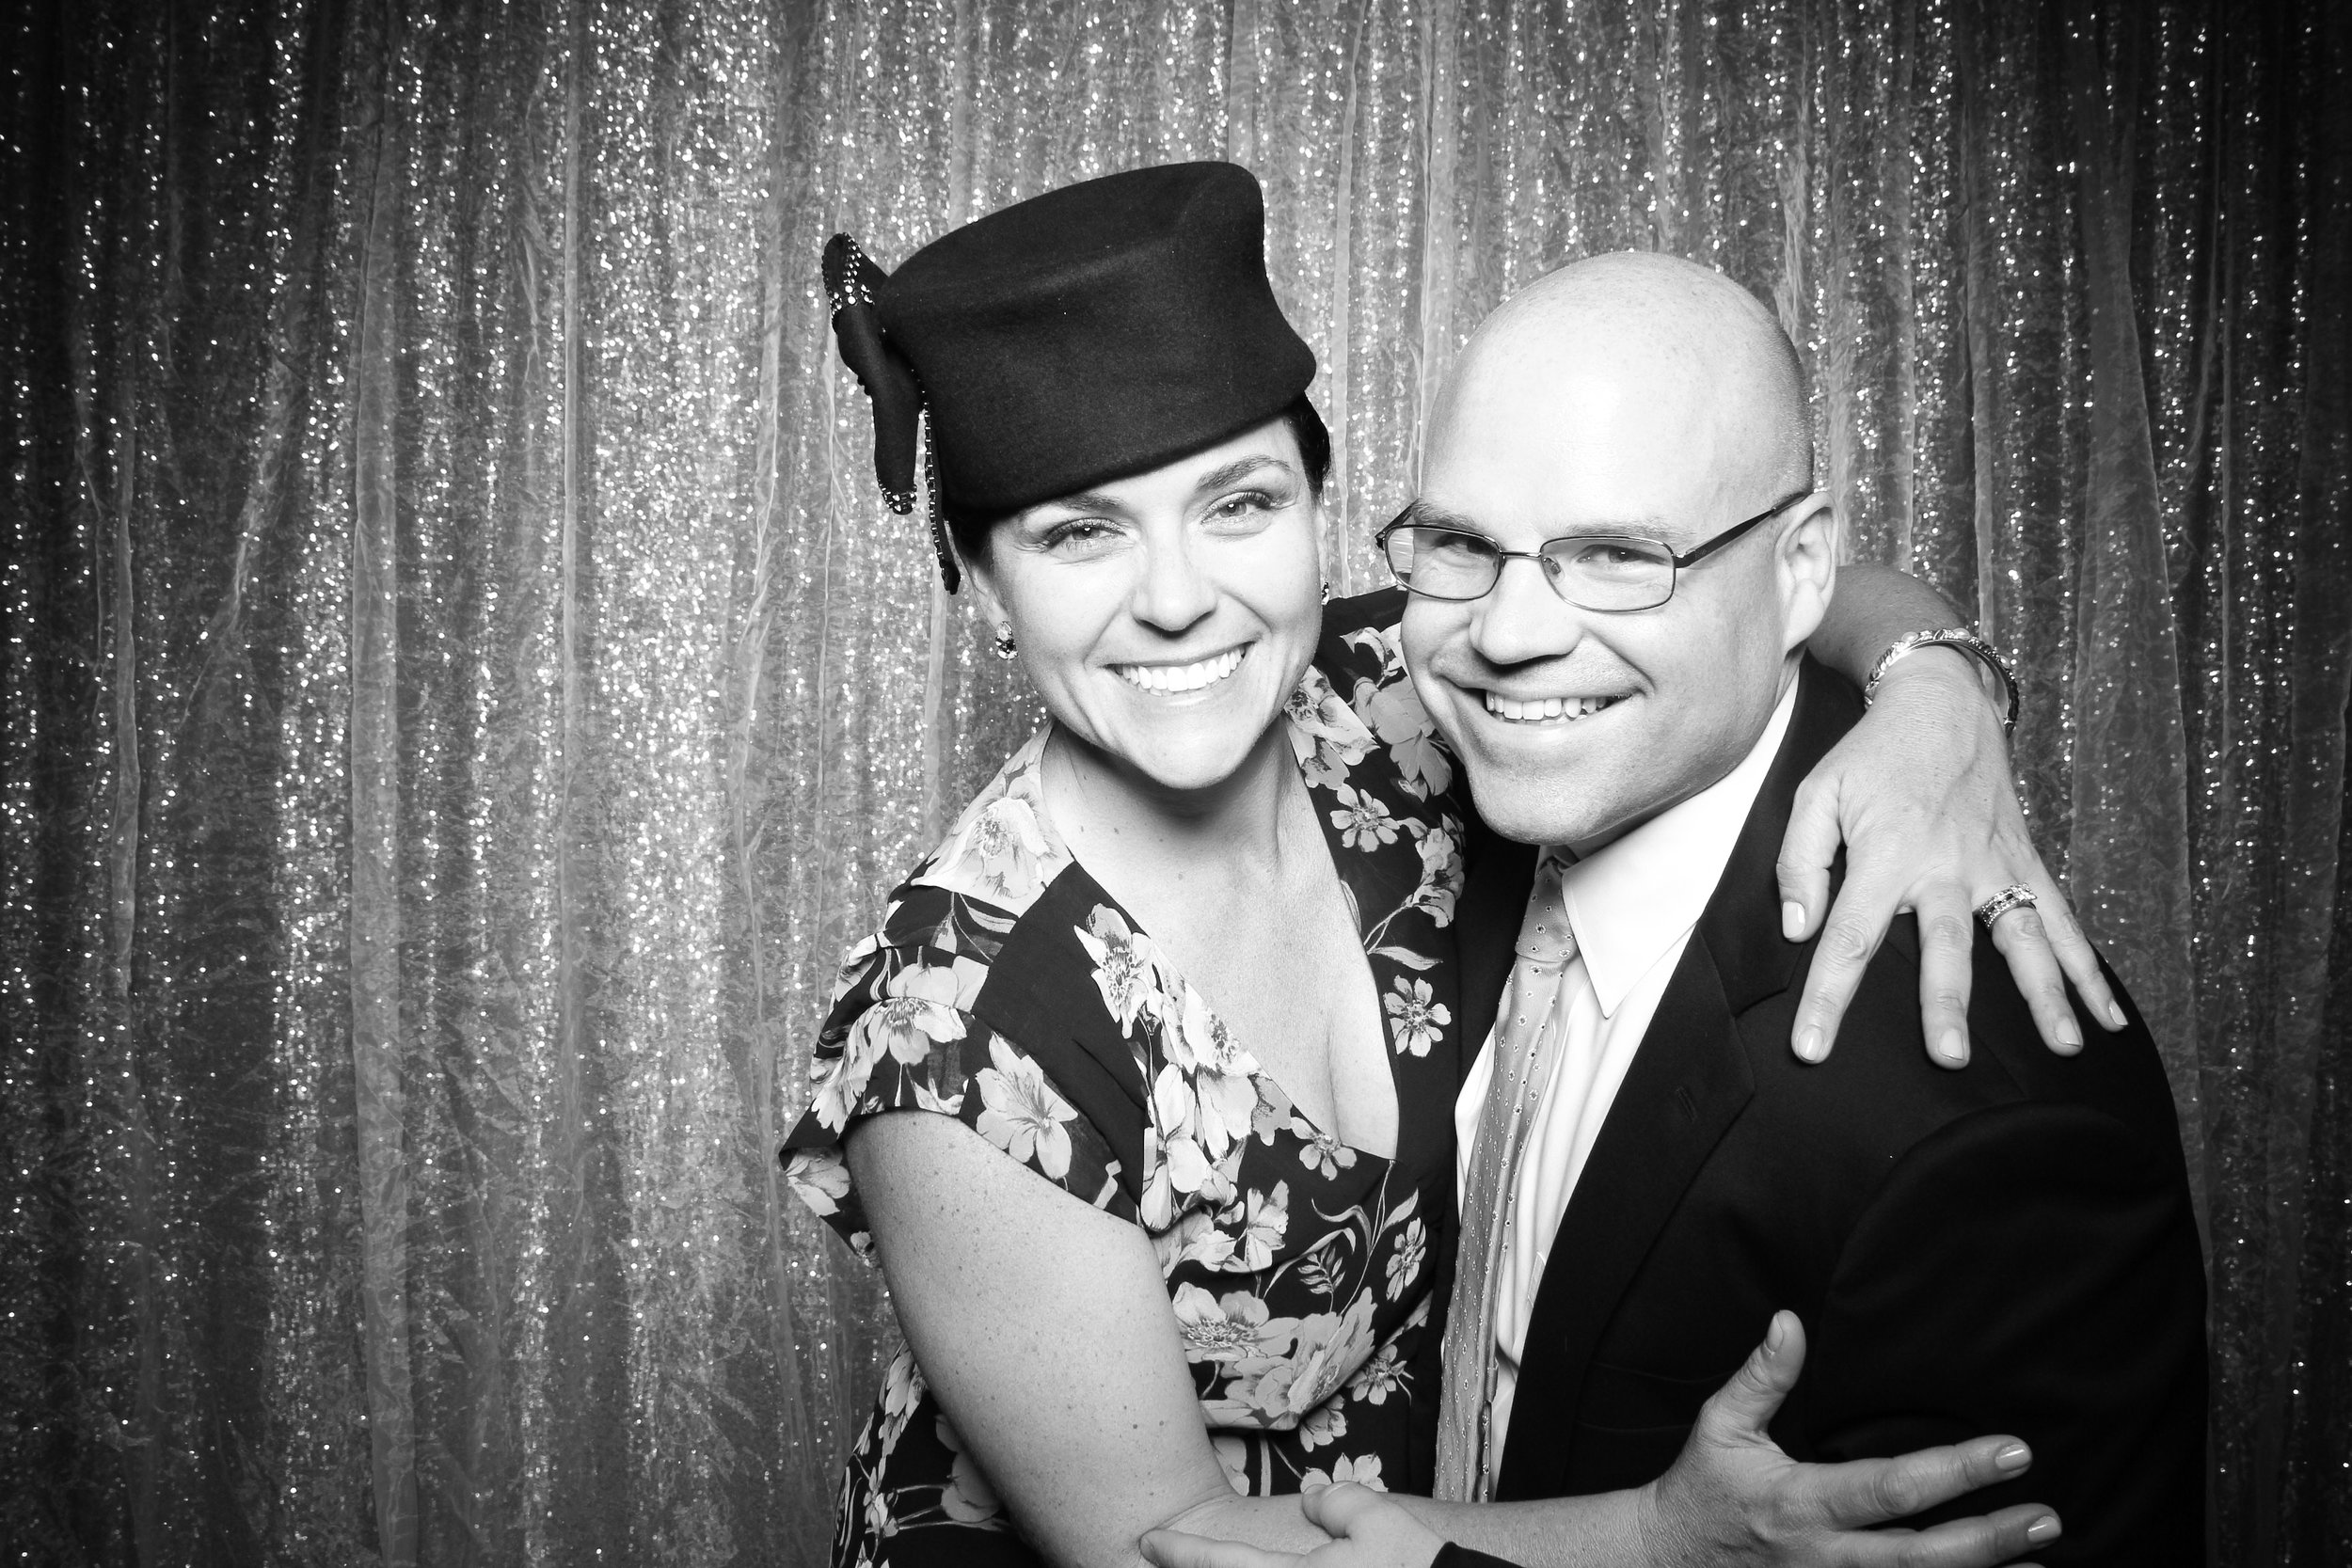 Chicago_Vintage_Wedding_Photobooth_Medinah_Country_Club_12.jpg